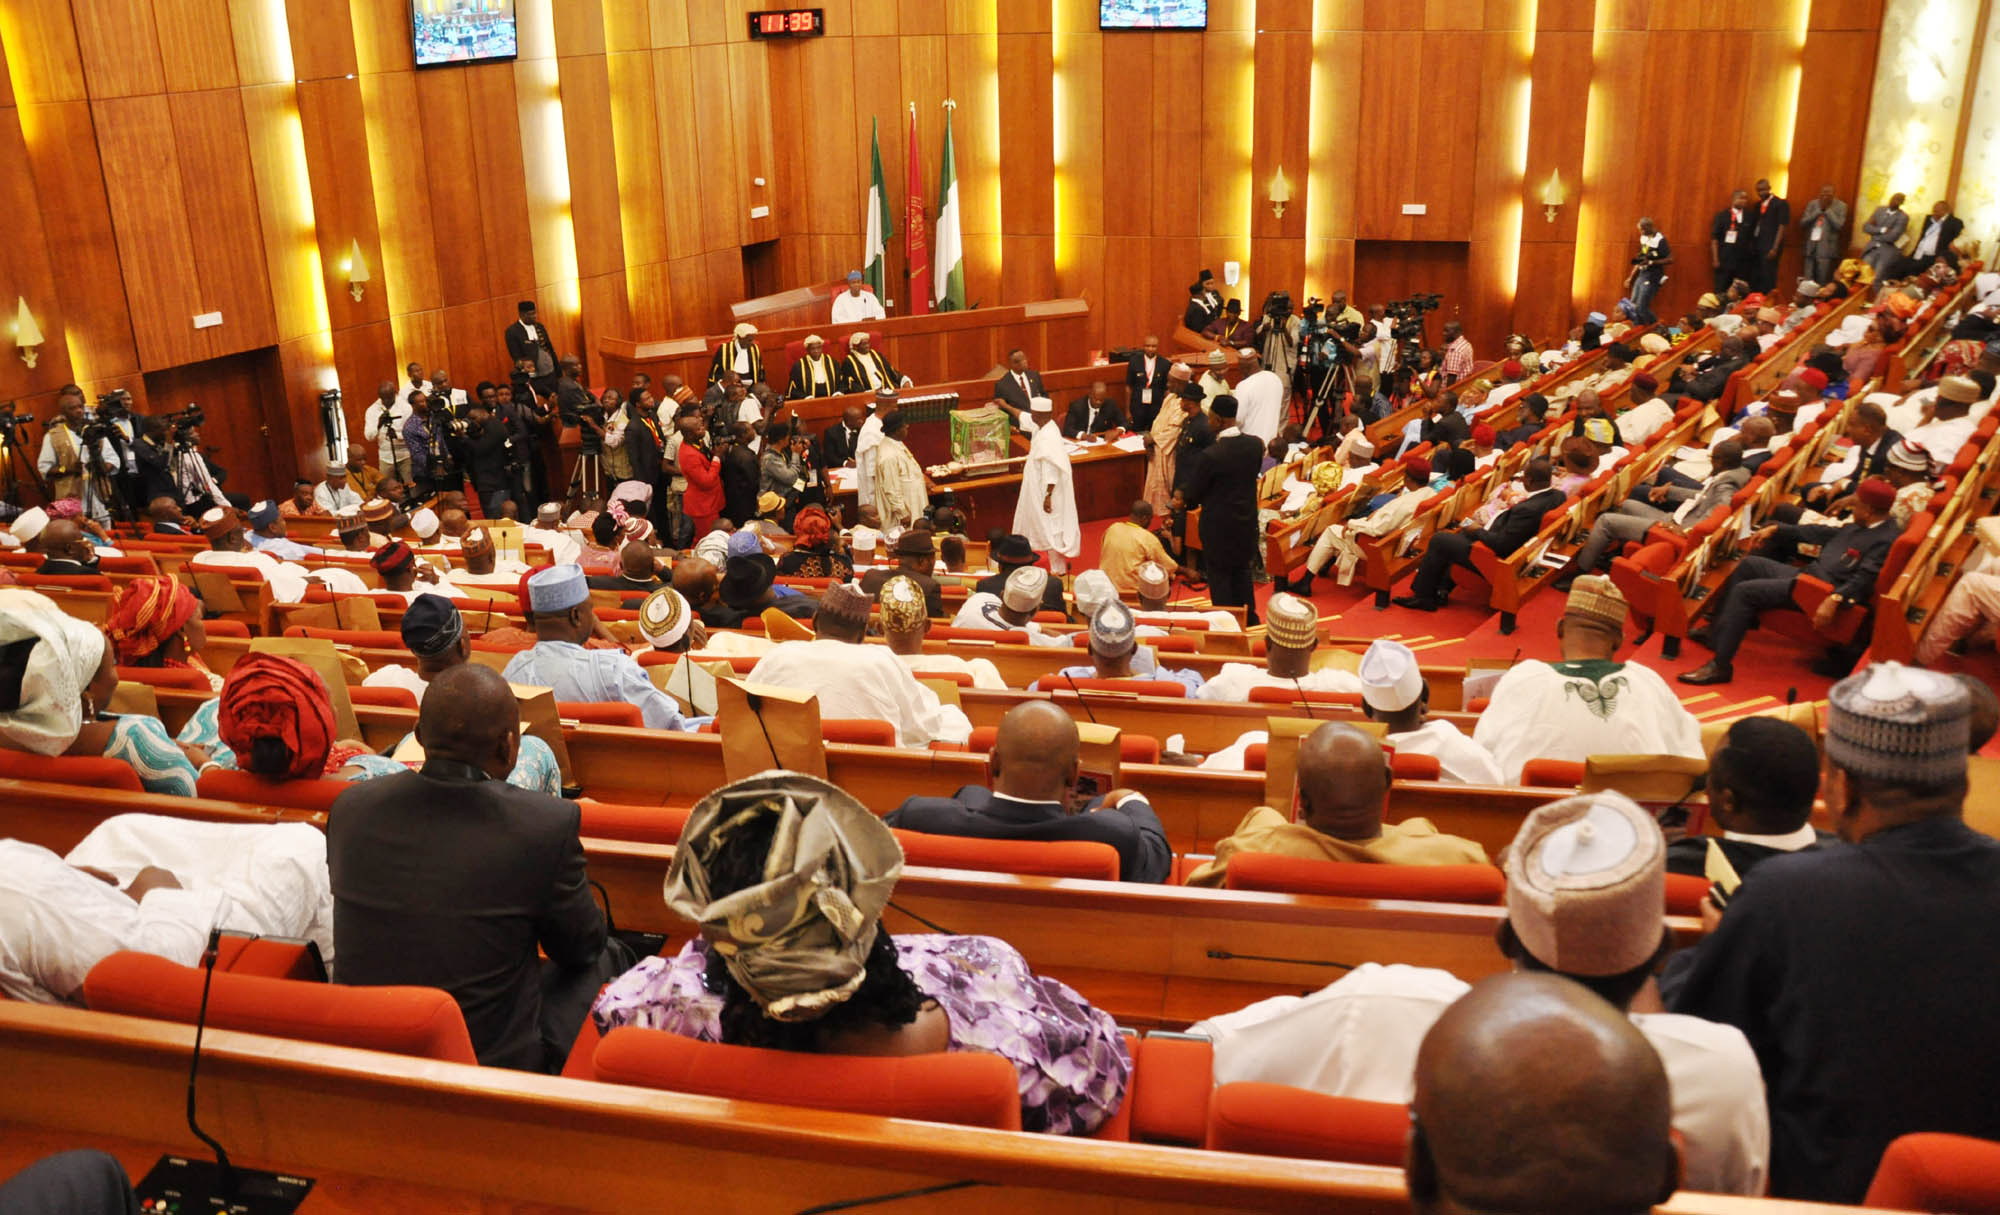 Senate Probes Resumption Of NHRC Boss Without Confirmation